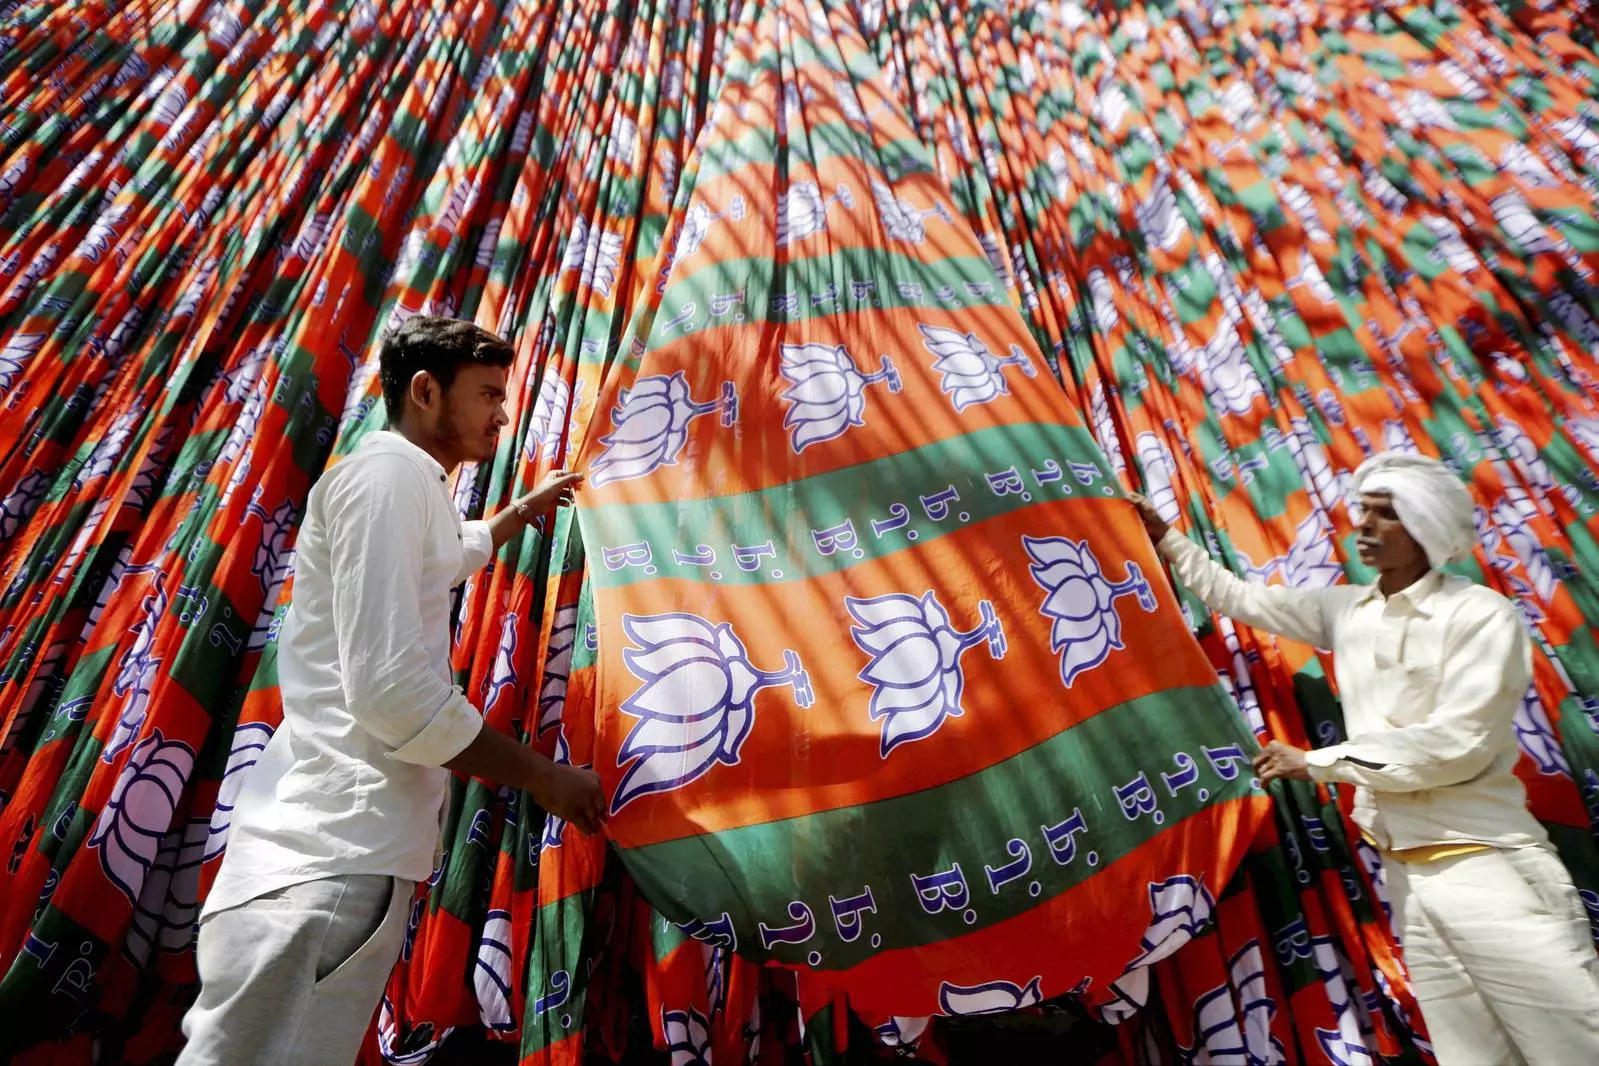 Assembly Election 2022: The new Union Minister will reach 120 Assembly constituencies and seek the blessings of the people before the Lok Sabha elections